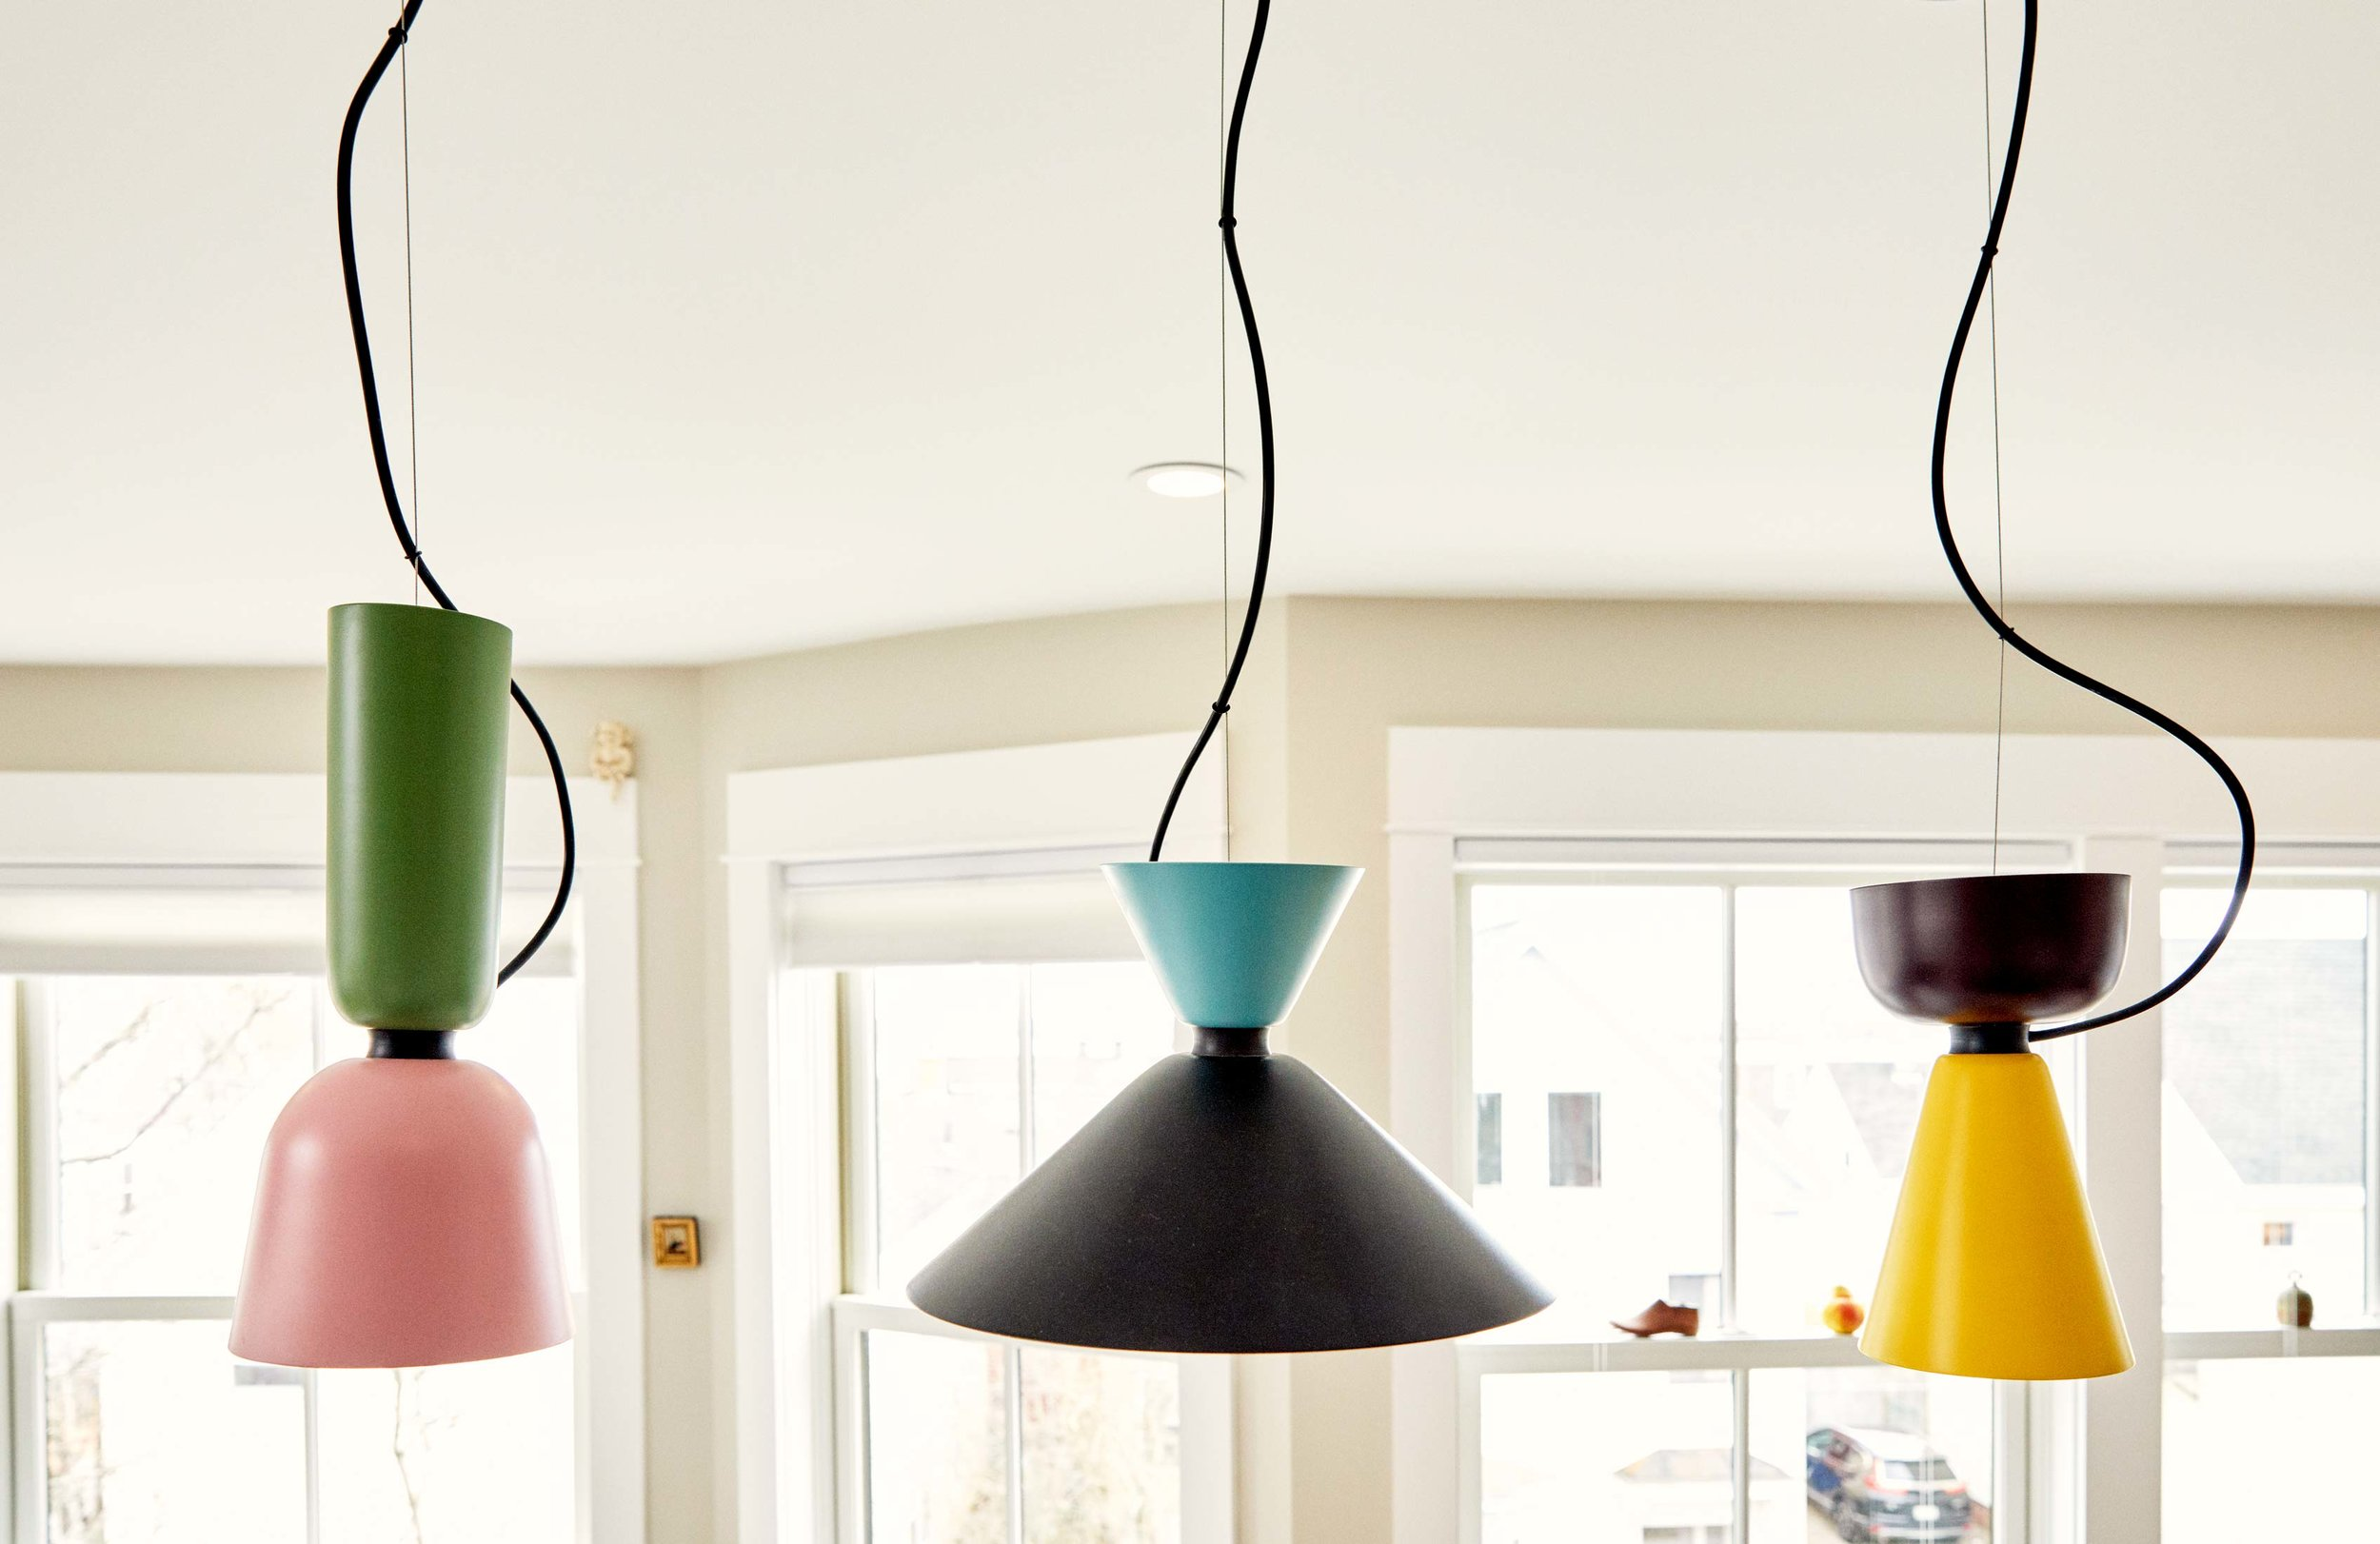 The colorful, whimsical light fixtures from Hem, a Danish company, were chosen by Soozie for their terrific character.